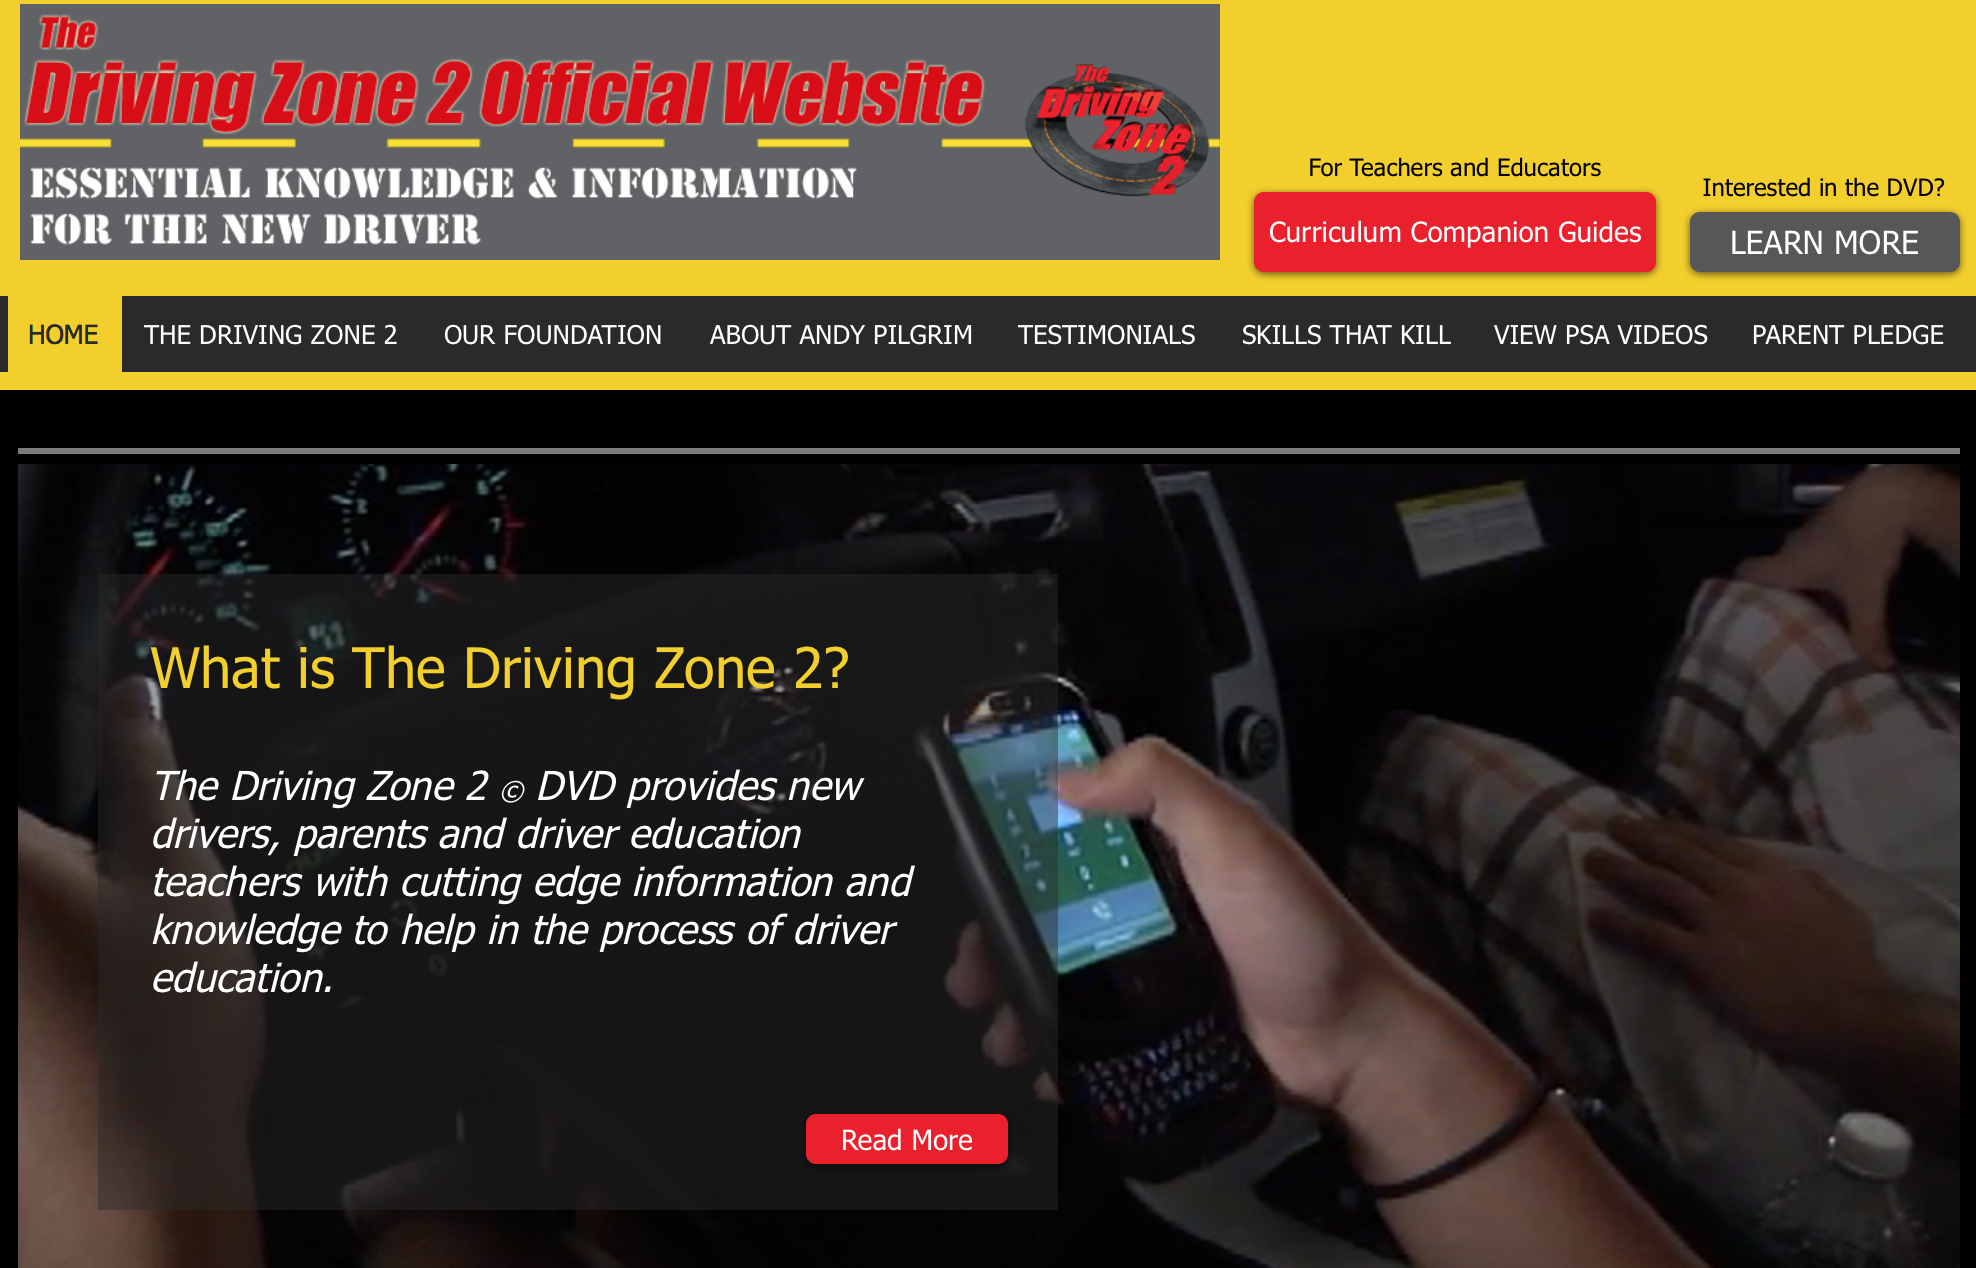 The Driving Zone 2 Official Website